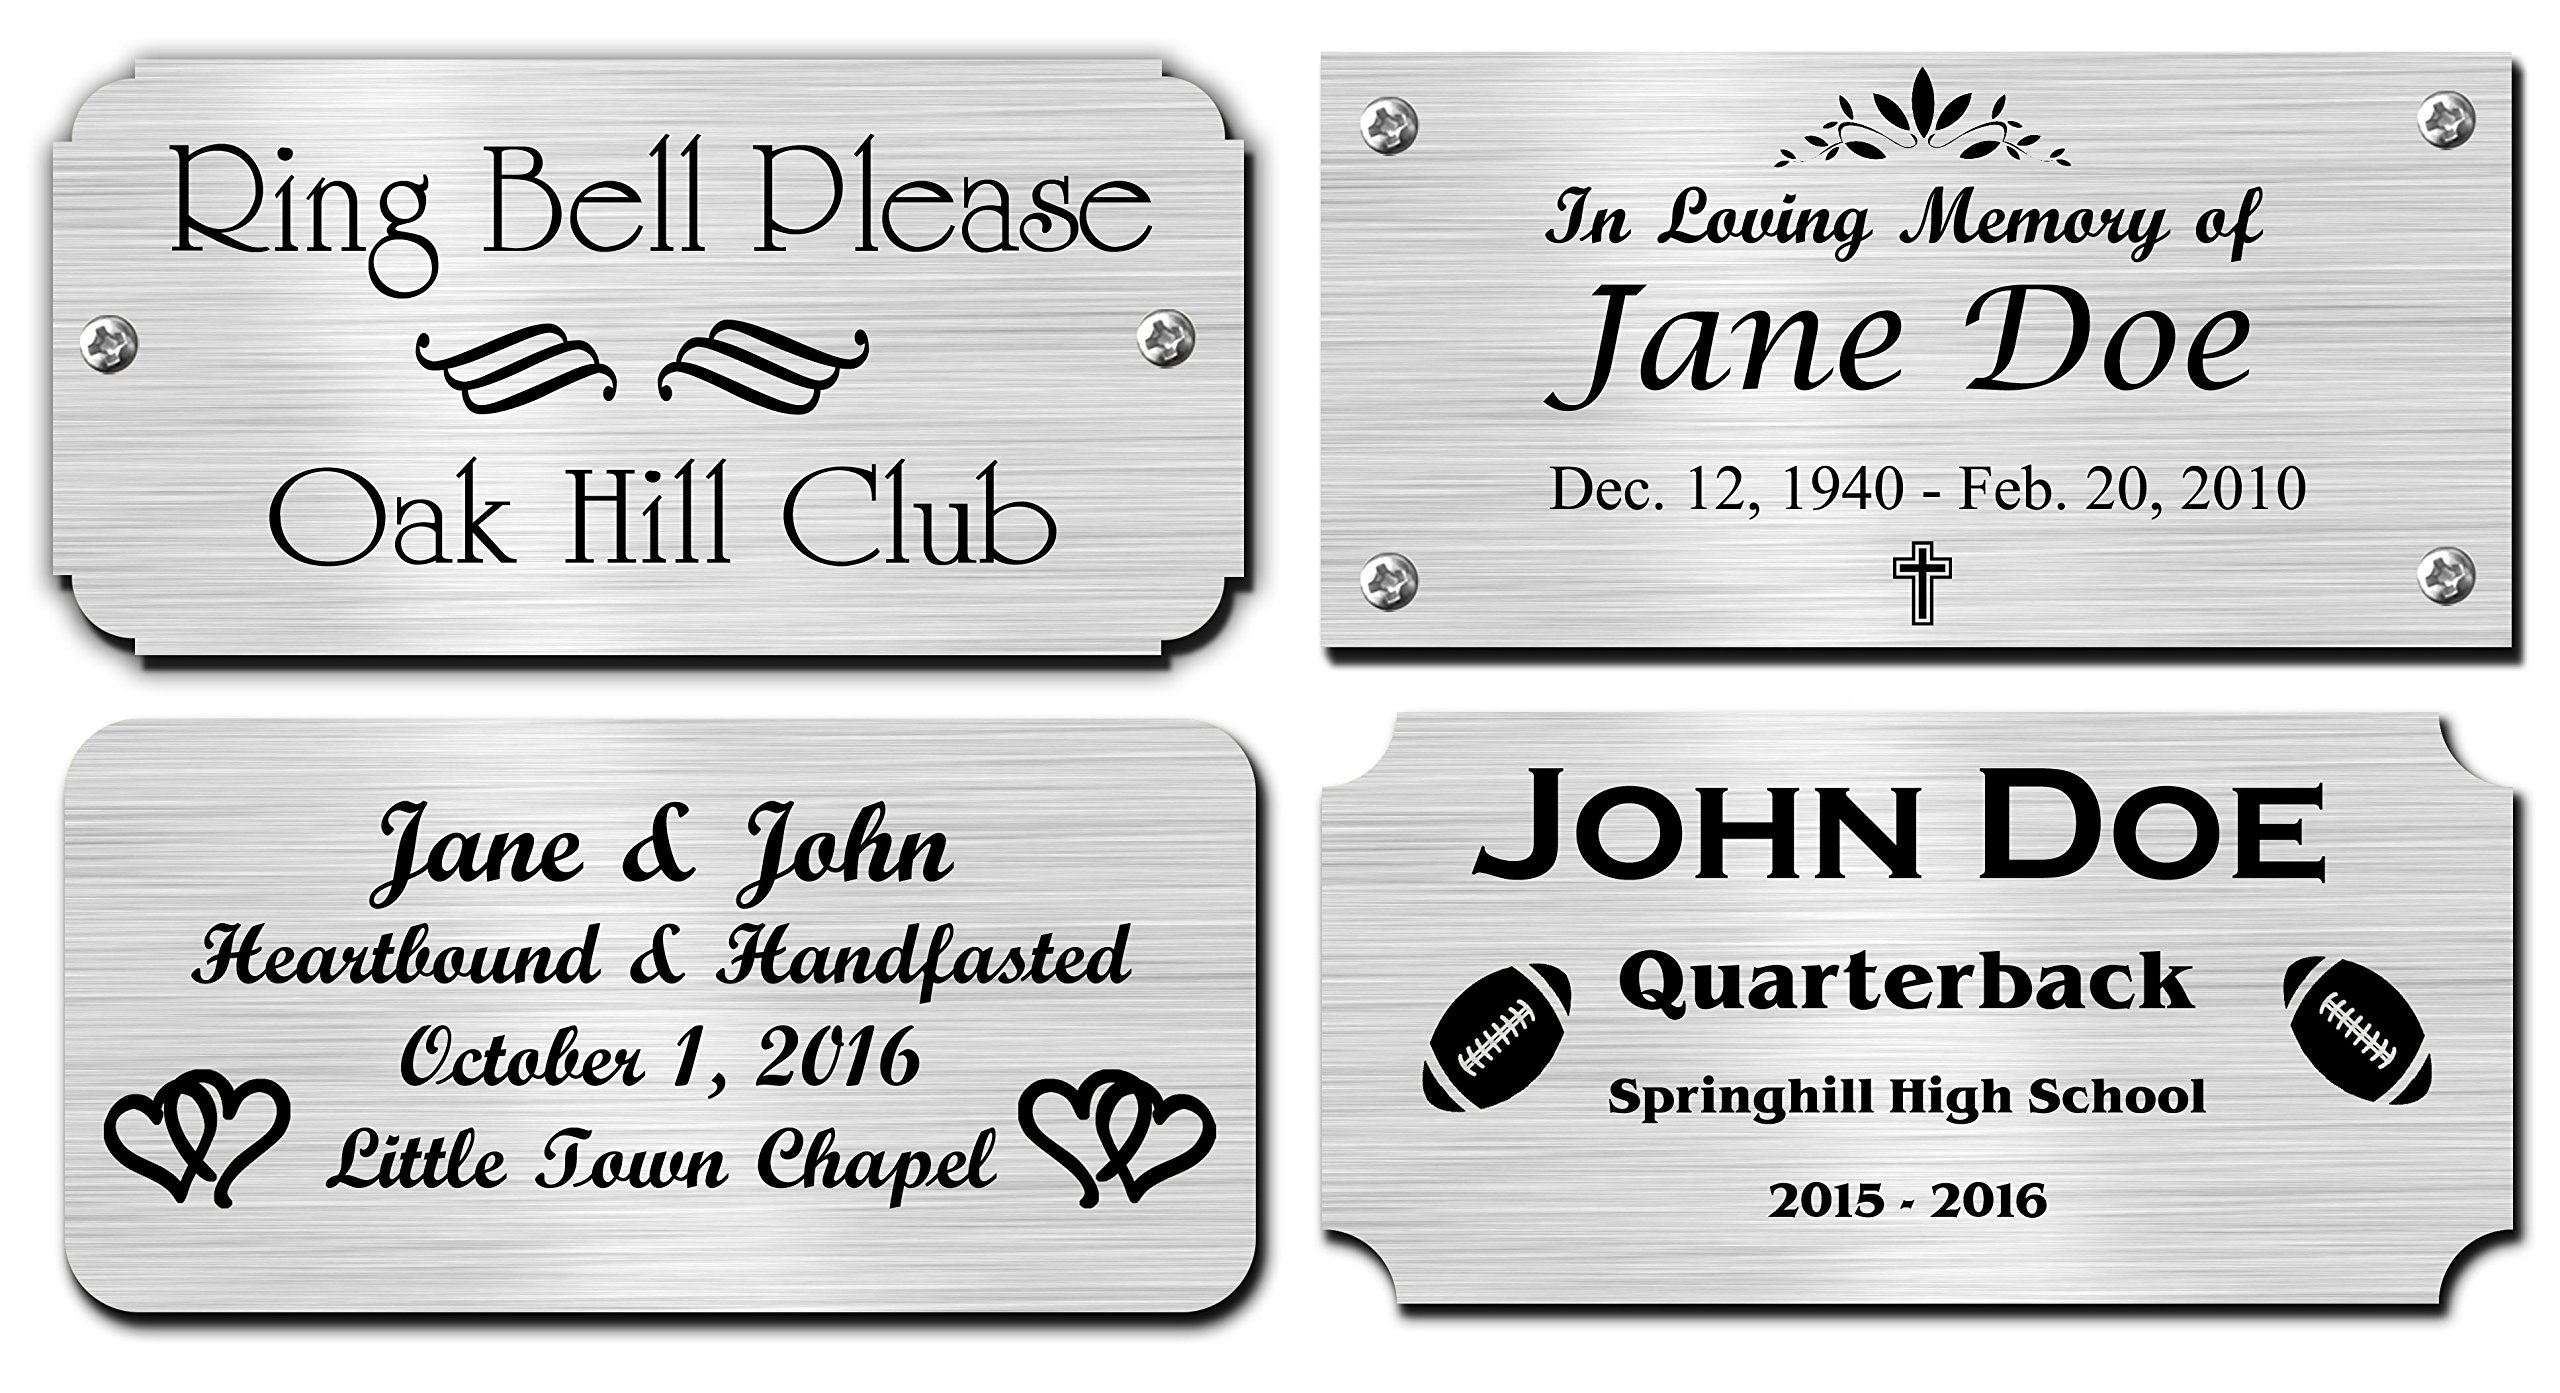 2'' H x 4'' W, Silver Finish Solid Copper Nameplate Personalized Custom Laser Engraved Label Art Tag for Frames Notched Square or Round Corners Made in USA